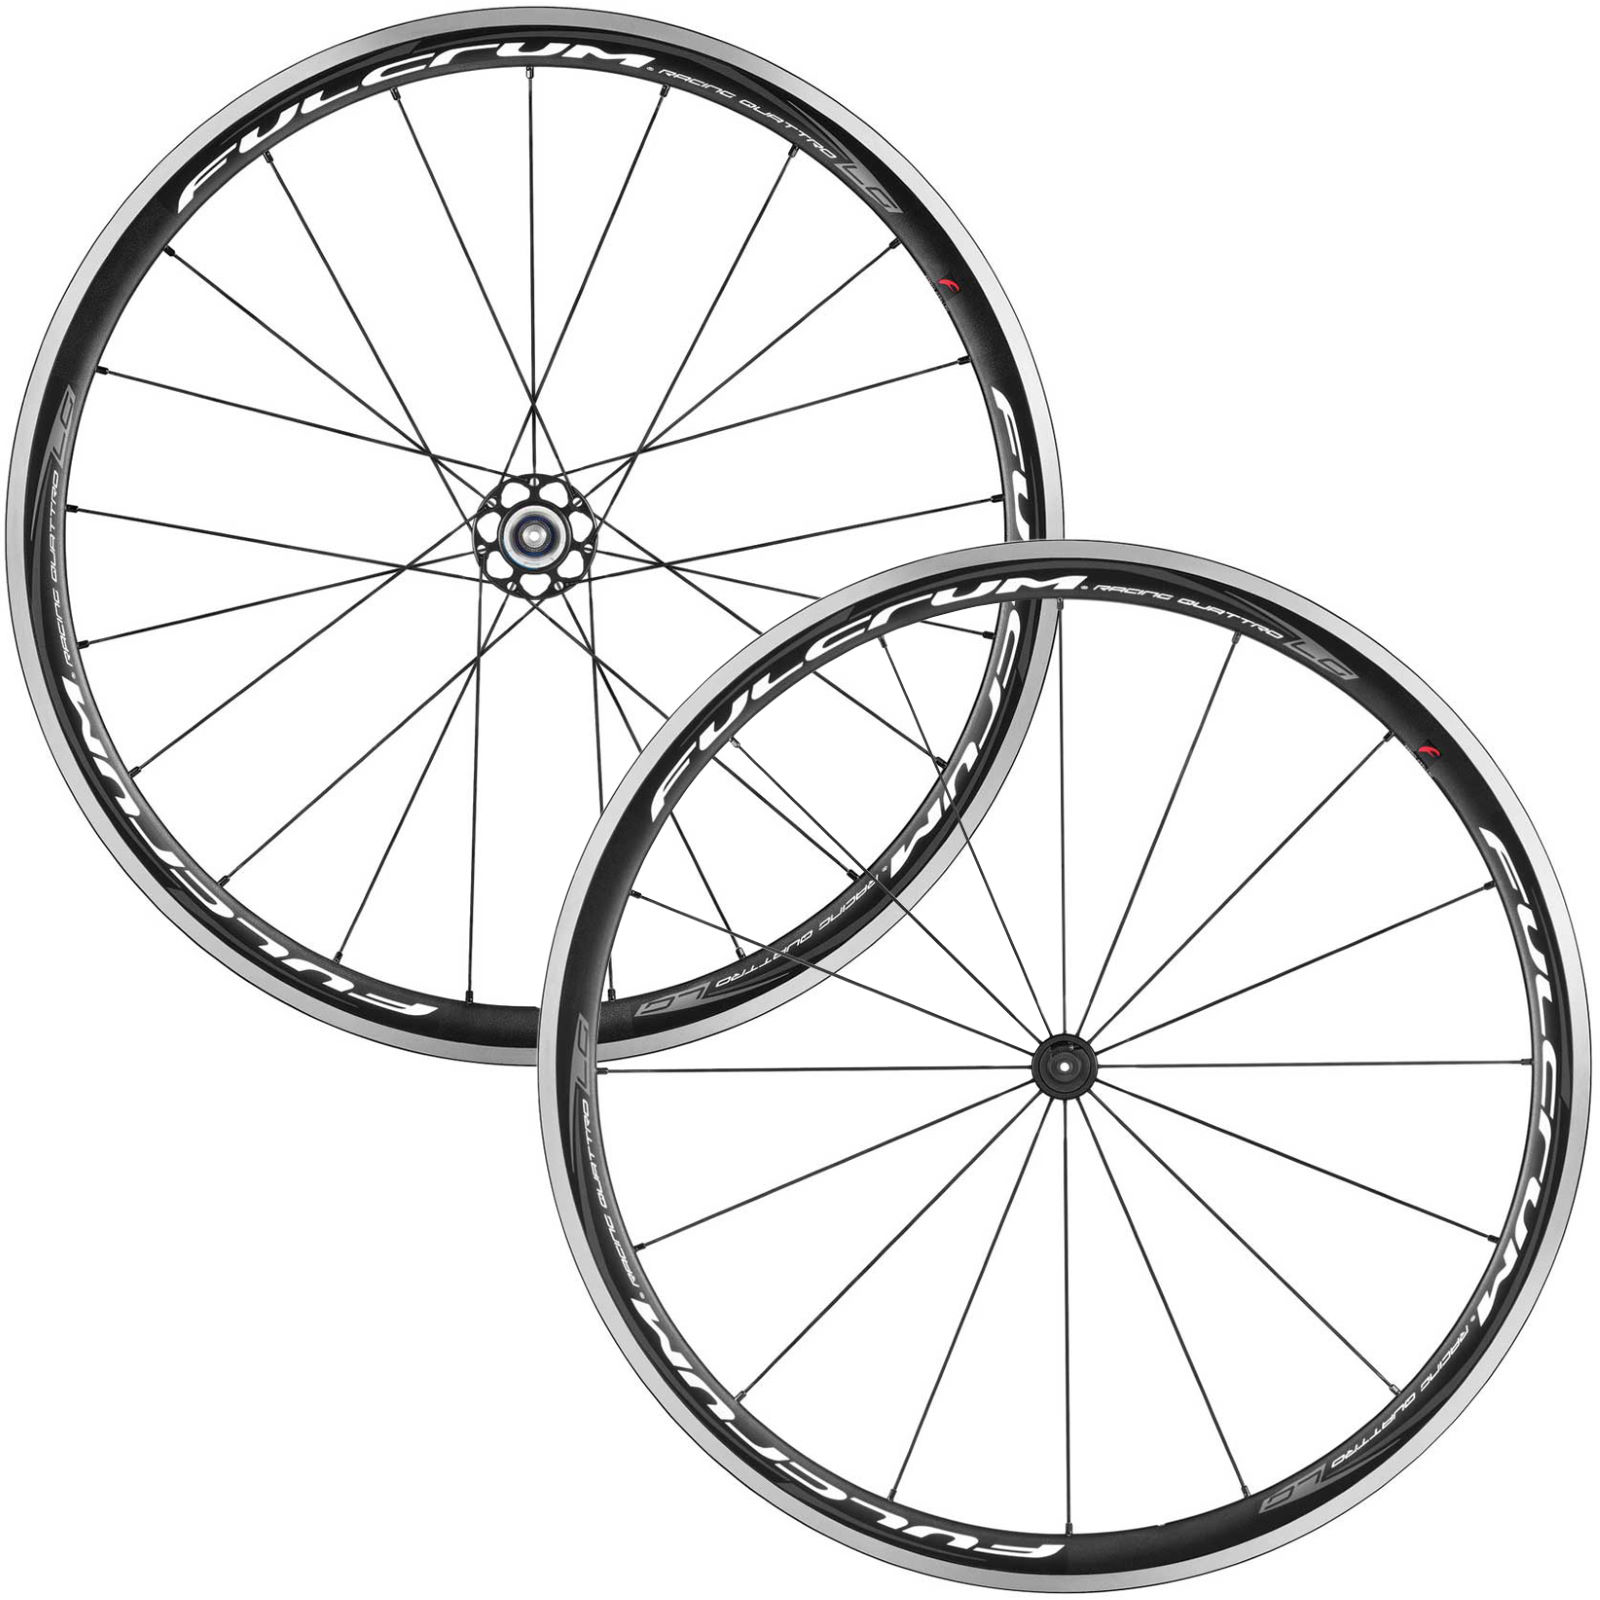 http://www.wigglestatic.com/product-media/5360105779/fulcrum-racing-quattro-lg-wheelset.jpg?w=1600&h=1600&a=7